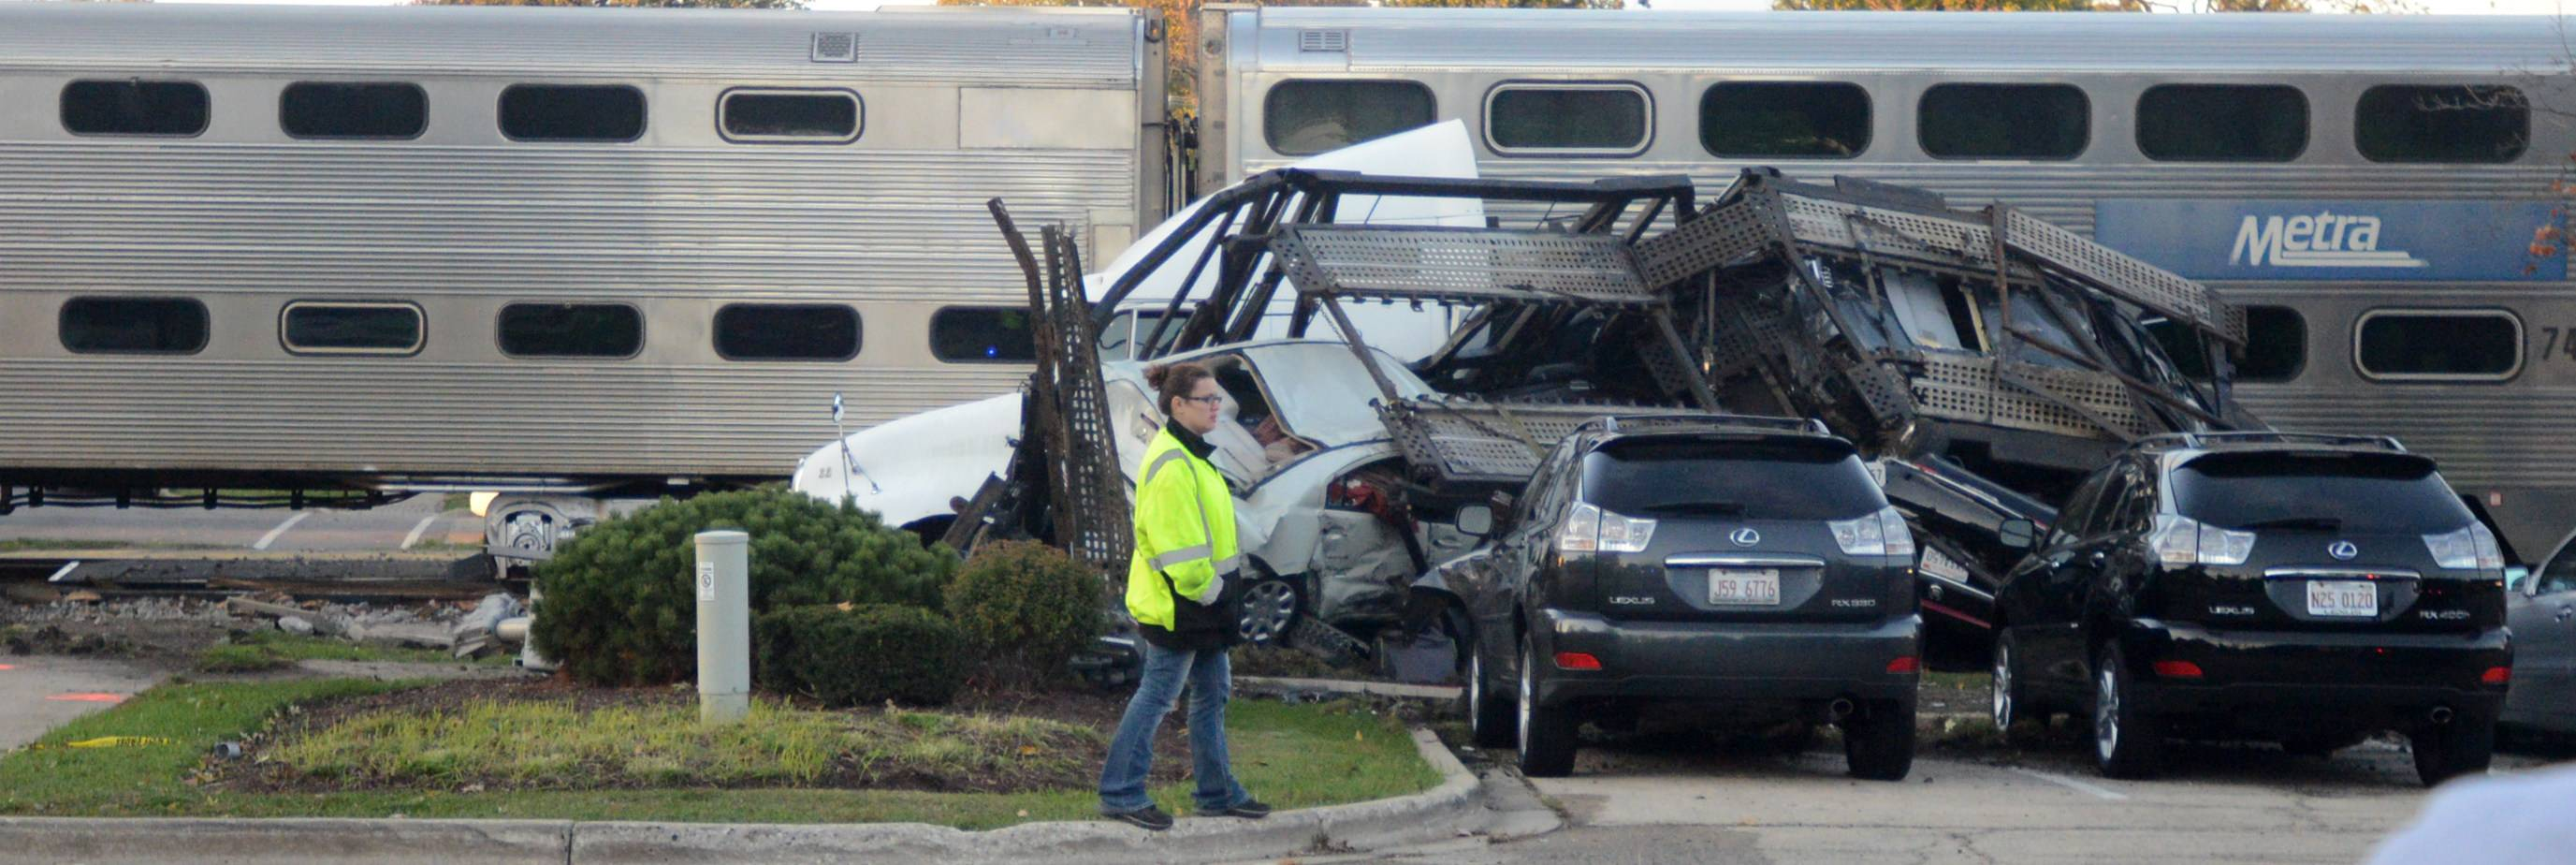 Collisions between trains and cars or pedestrians -- a fact of life in the suburbs -- also plague the international community. Prevention was the subject of